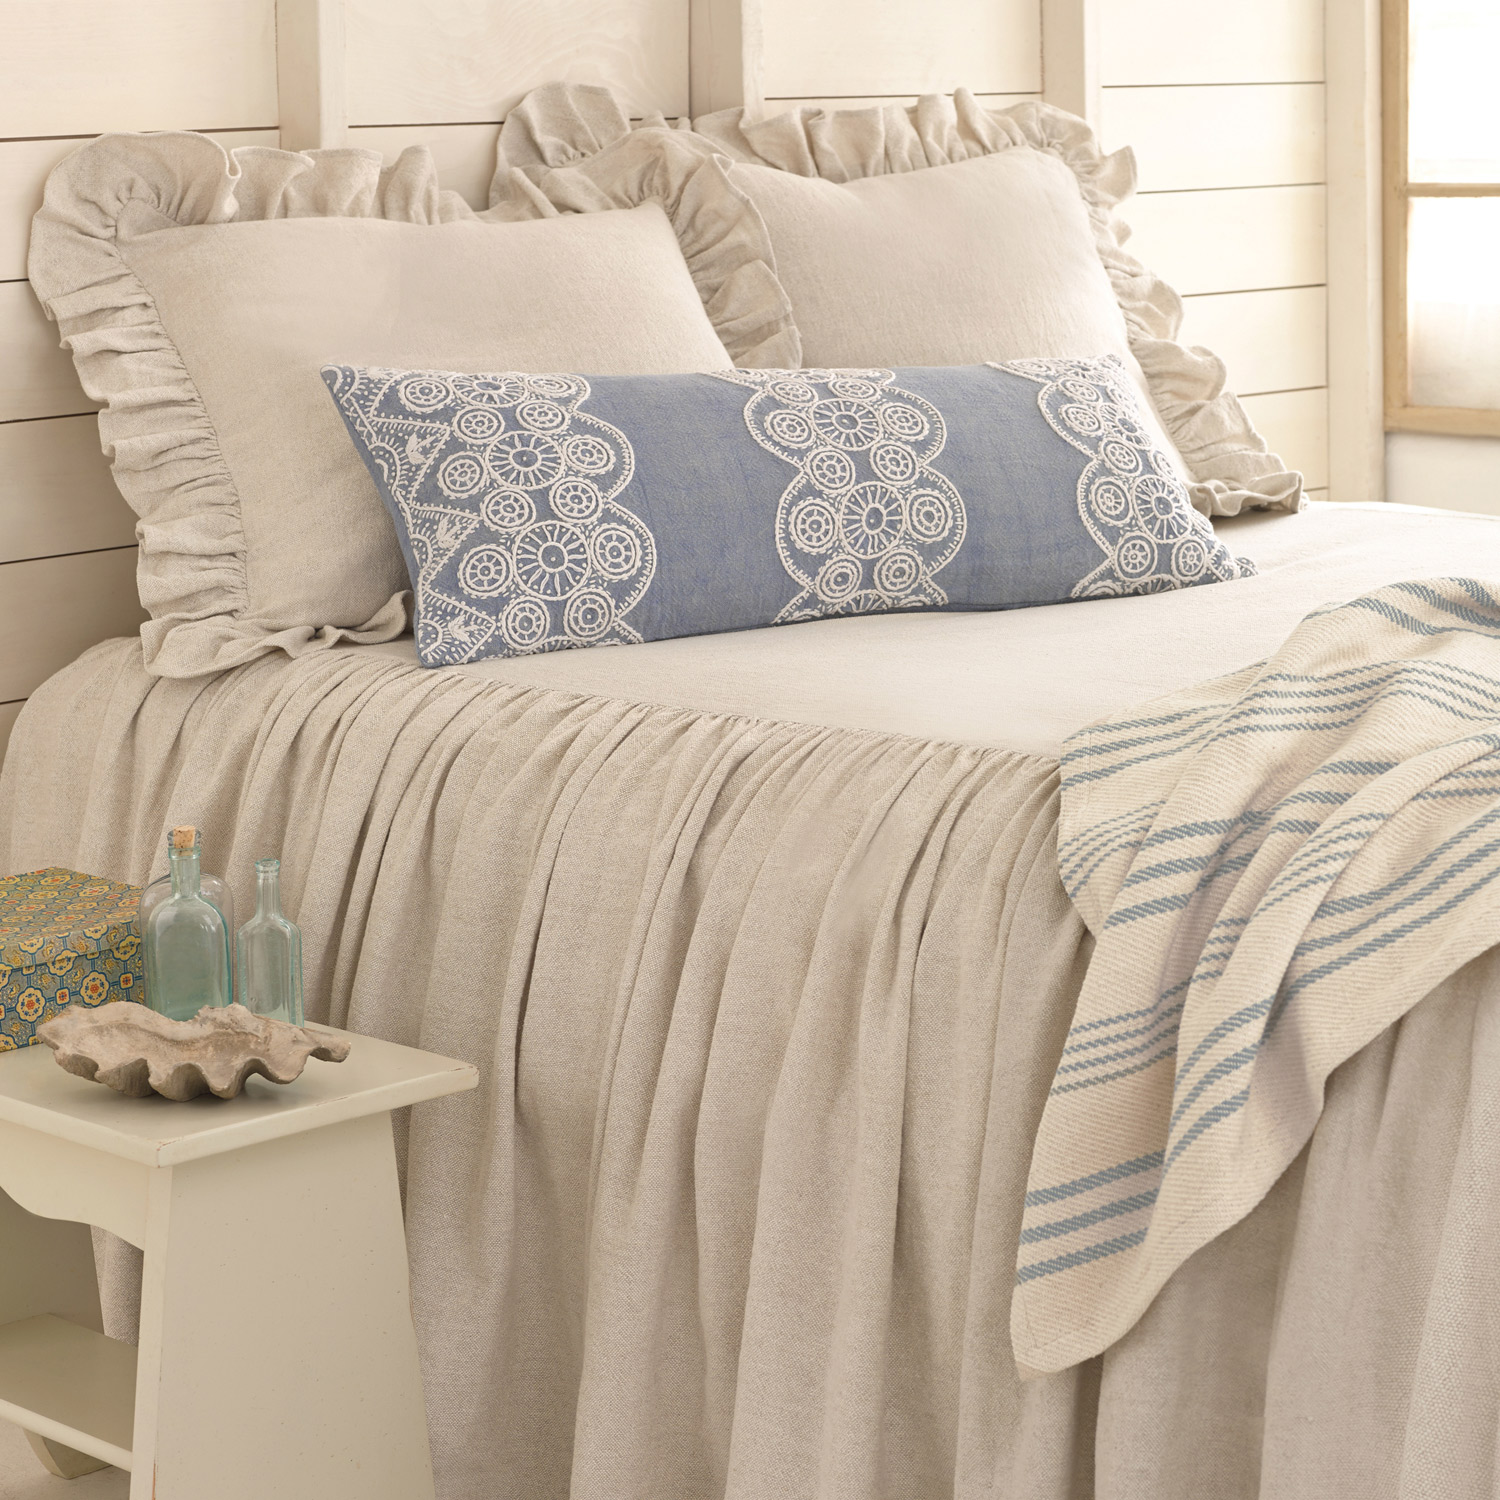 Chic Pine Cone Hill Savannah Linen Chambray Dove Grey Bedspread For Pretty Bed Ideas